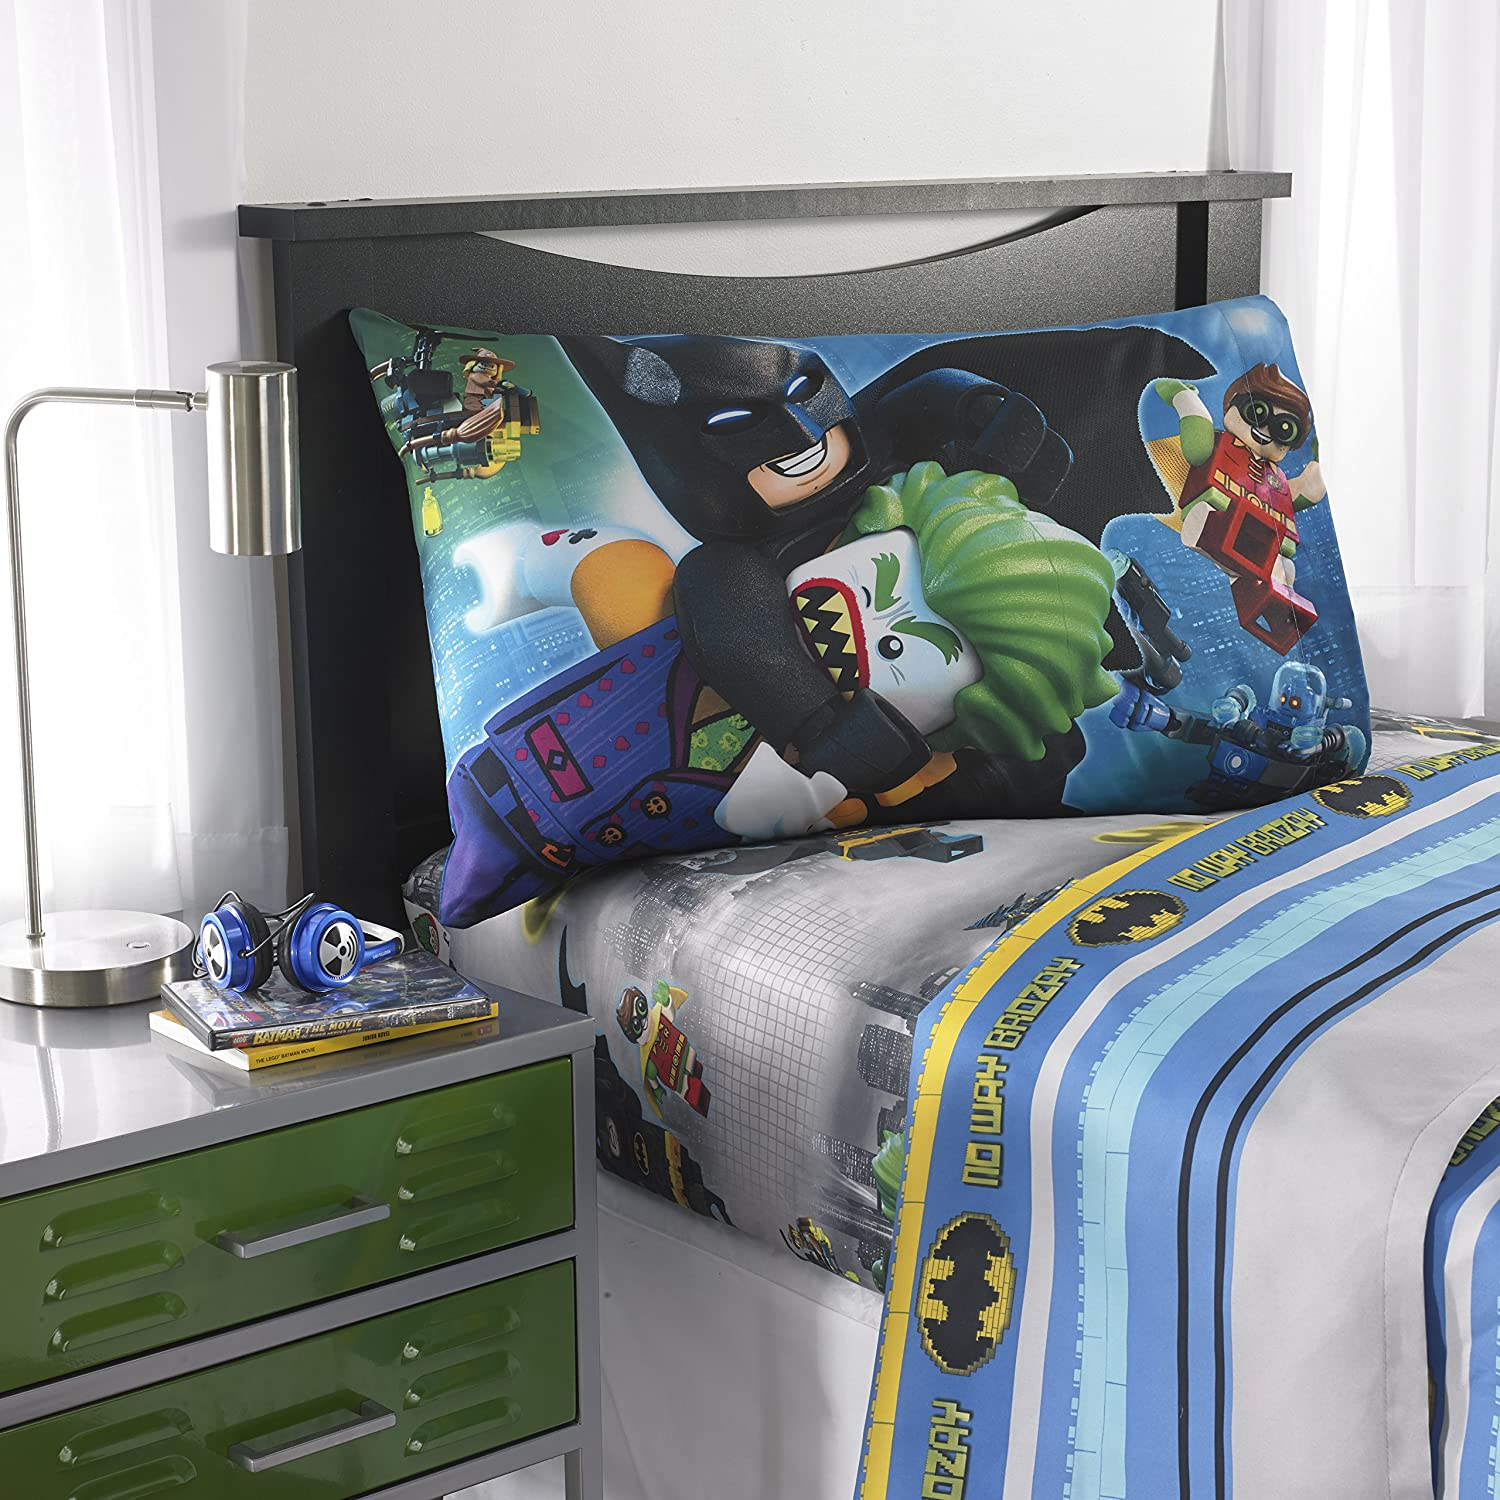 Batman Lego Movie Microfiber Sheet Set with Pillow Case